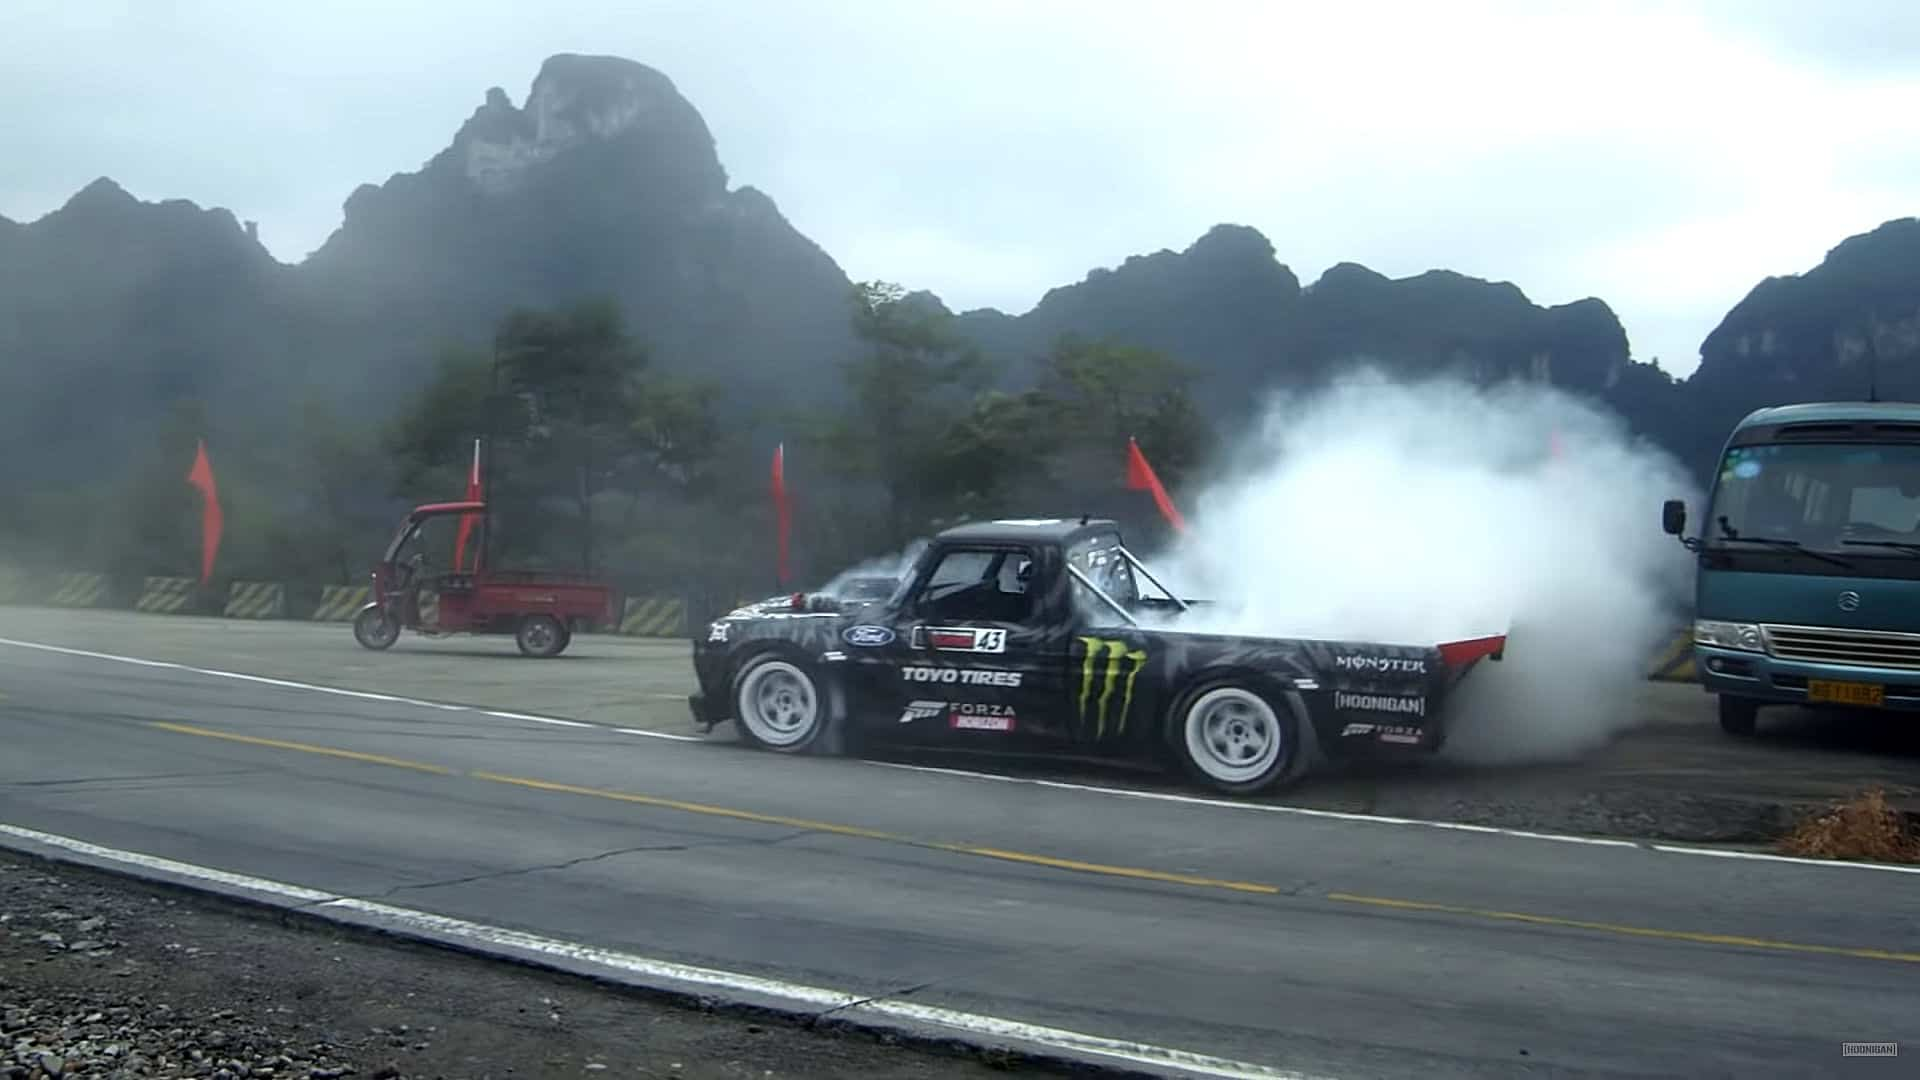 Ken Block's Climbkhana TWO Tianmen Mountain